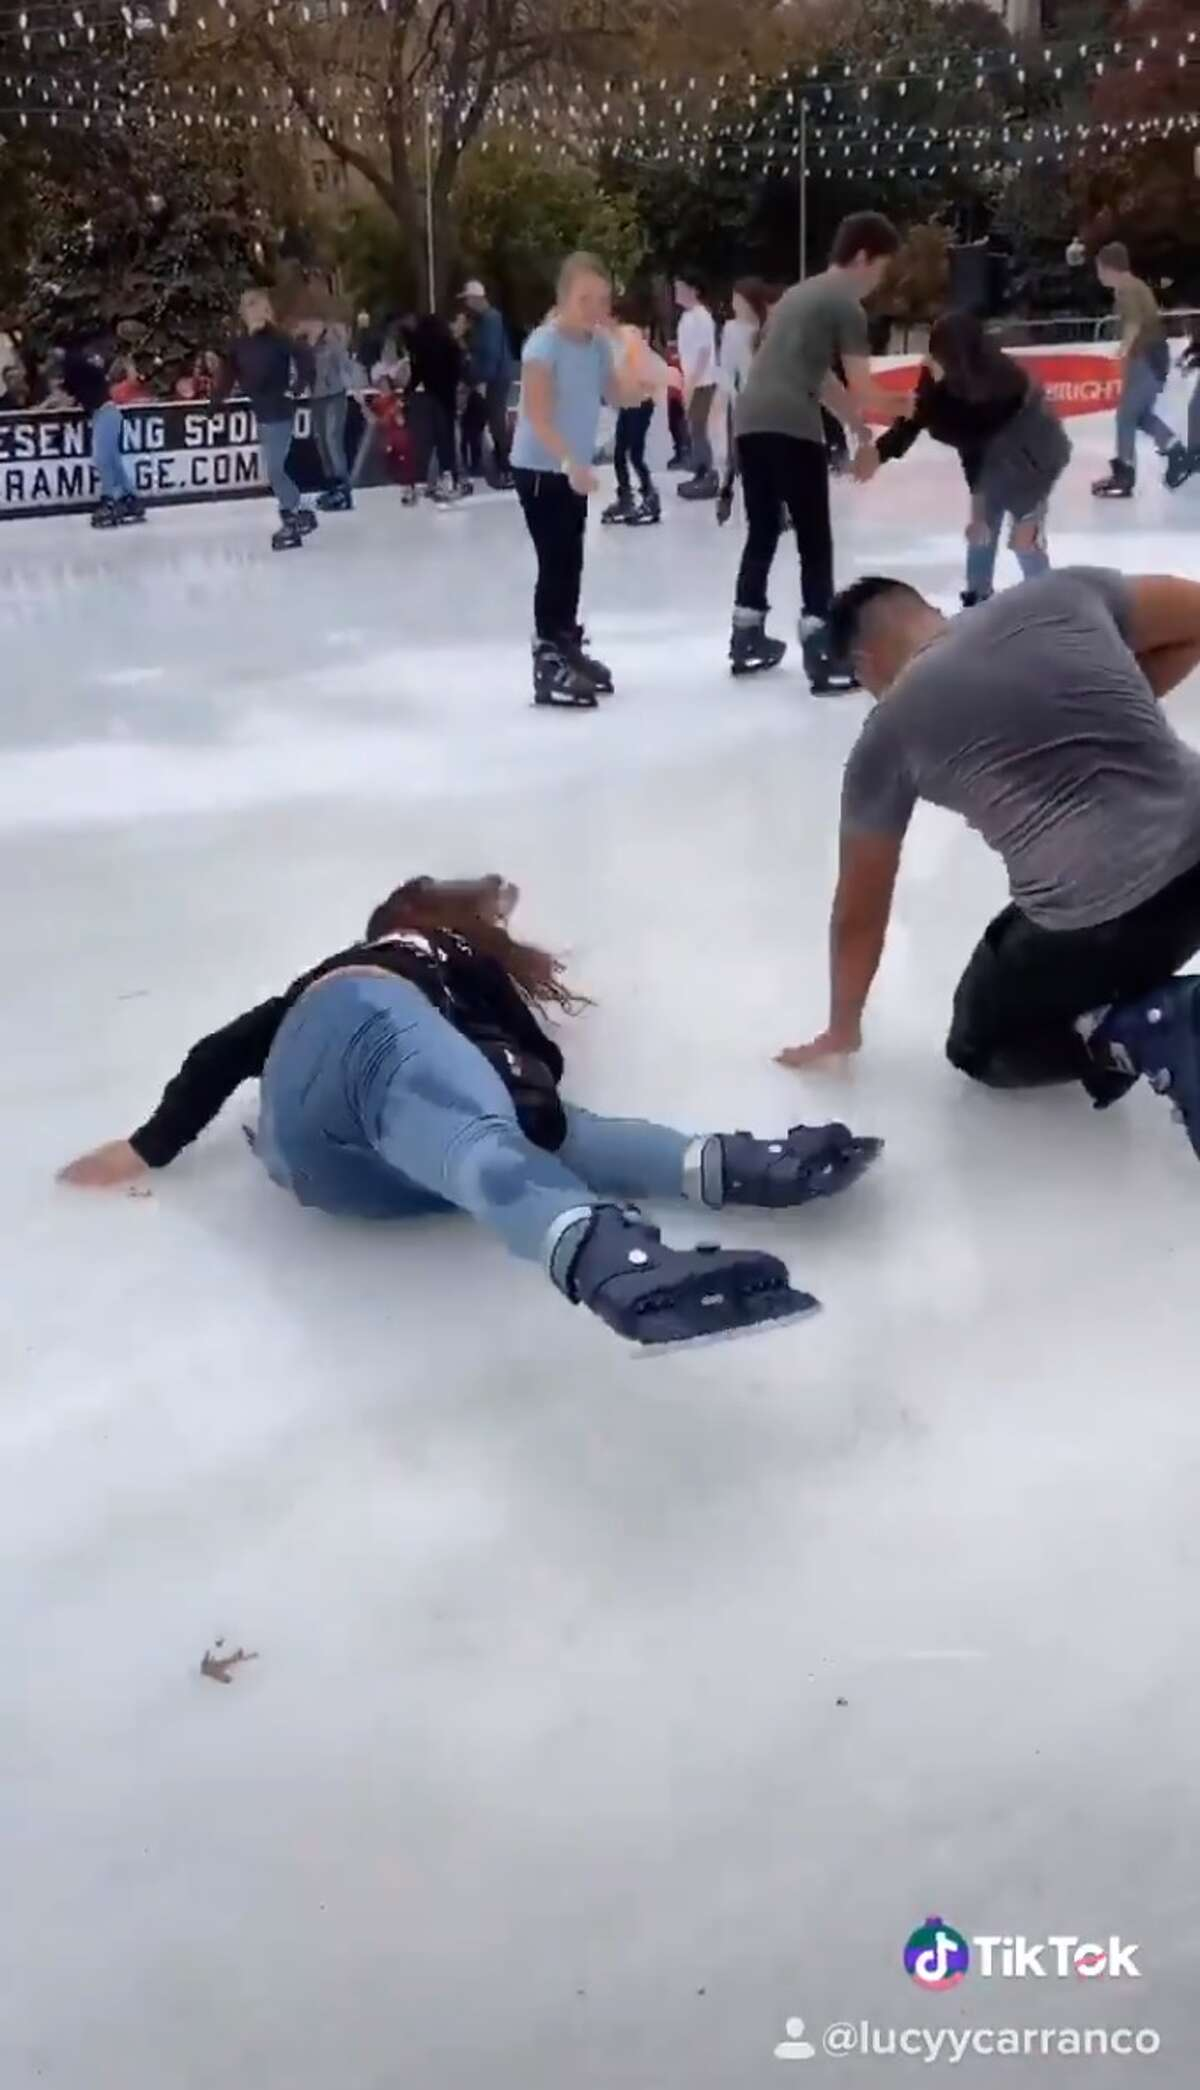 Lucy Carranco tweeted a video on Friday that shows San Antonio ice skaters falling more than once while at the outdoor ice skating rink at Travis Park.